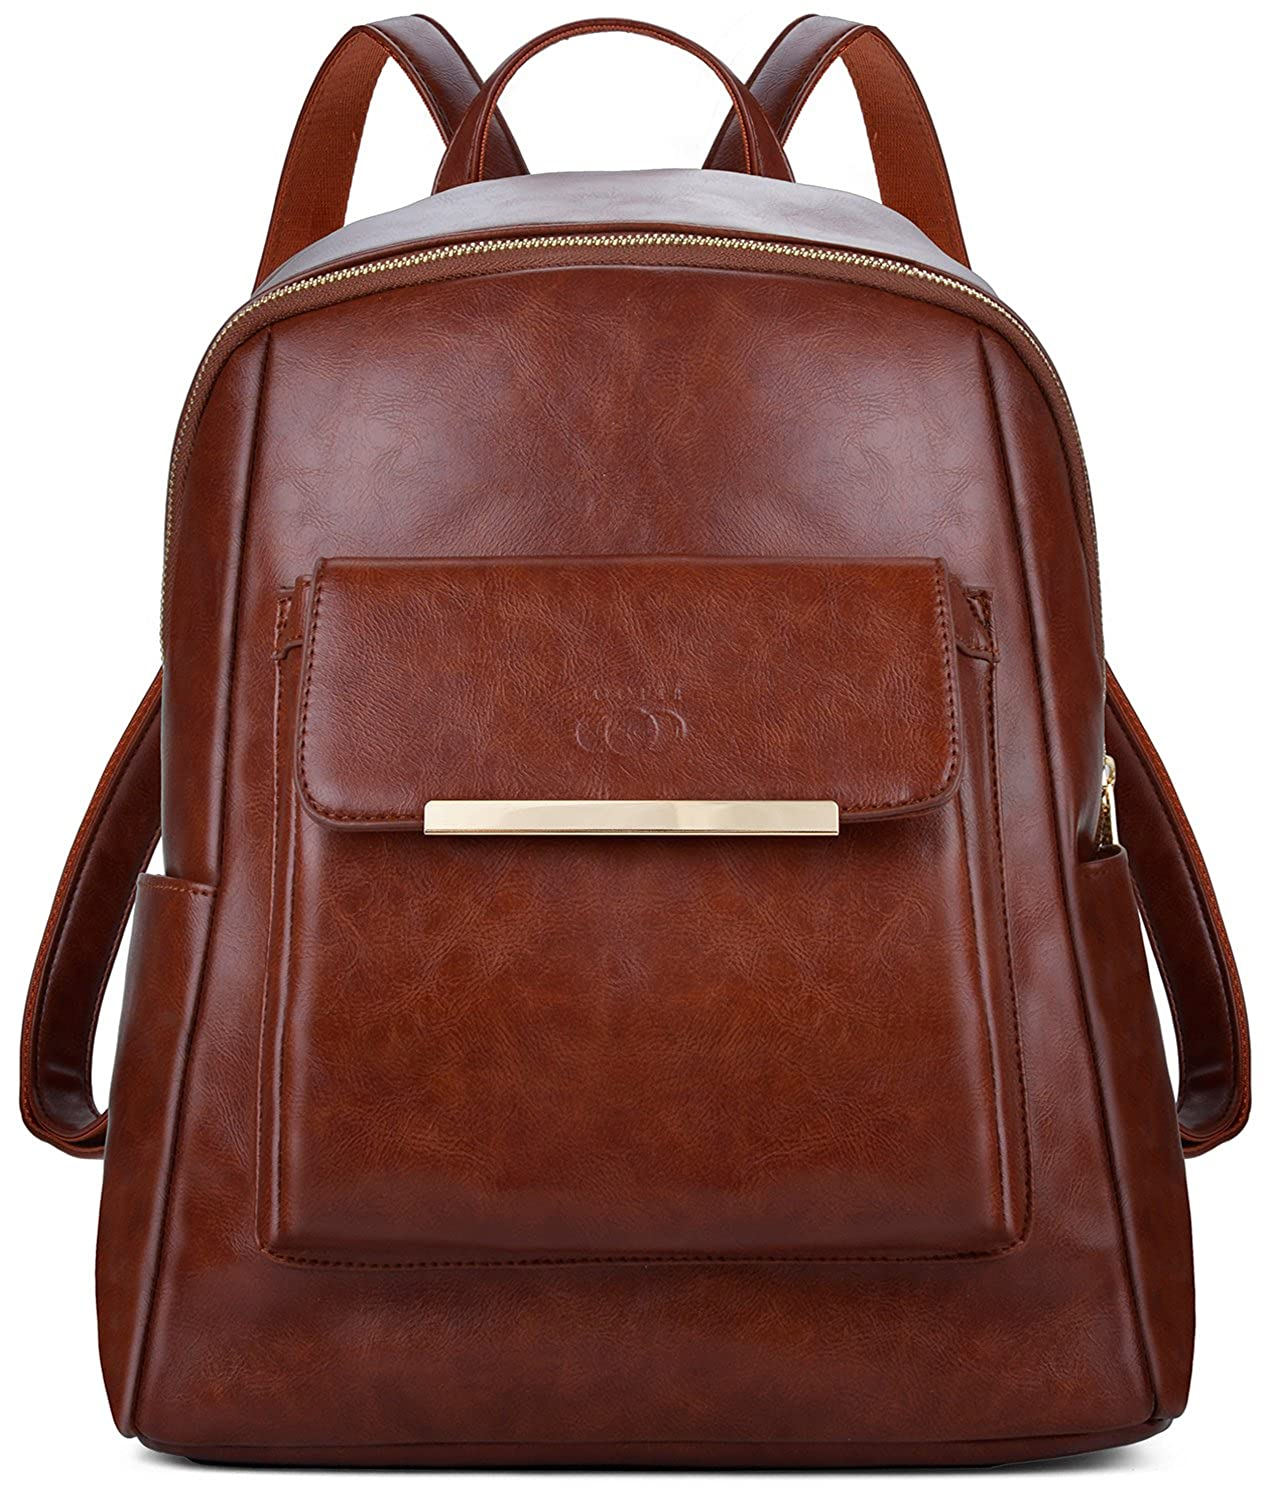 Brown Leather Backpack, COOFIT Backpack Purse Womens Backpack Fashion Backpack for Women